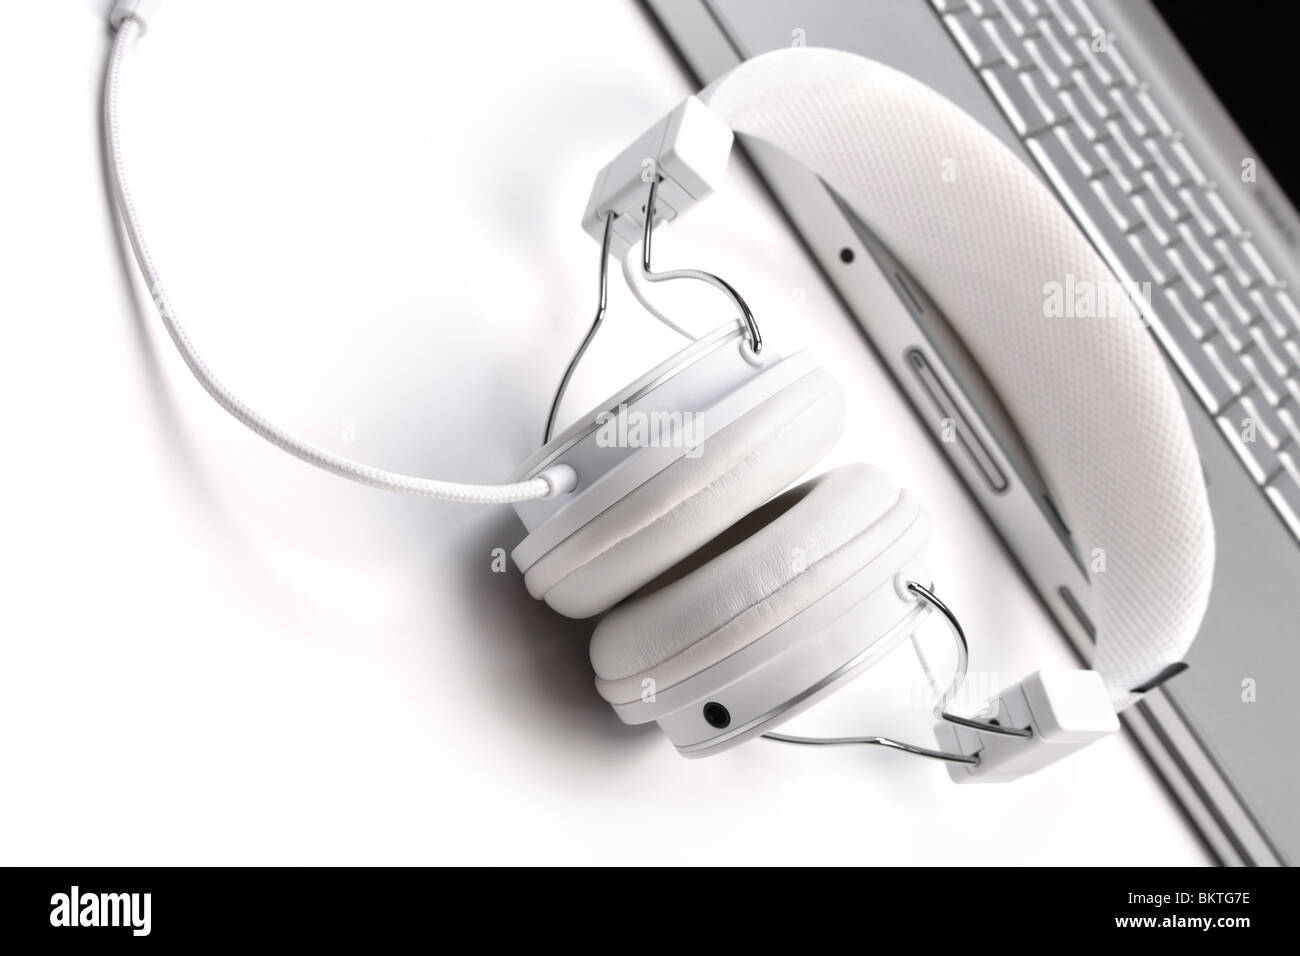 White elegance headphones and laptop on white background, tilt view. - Stock Image